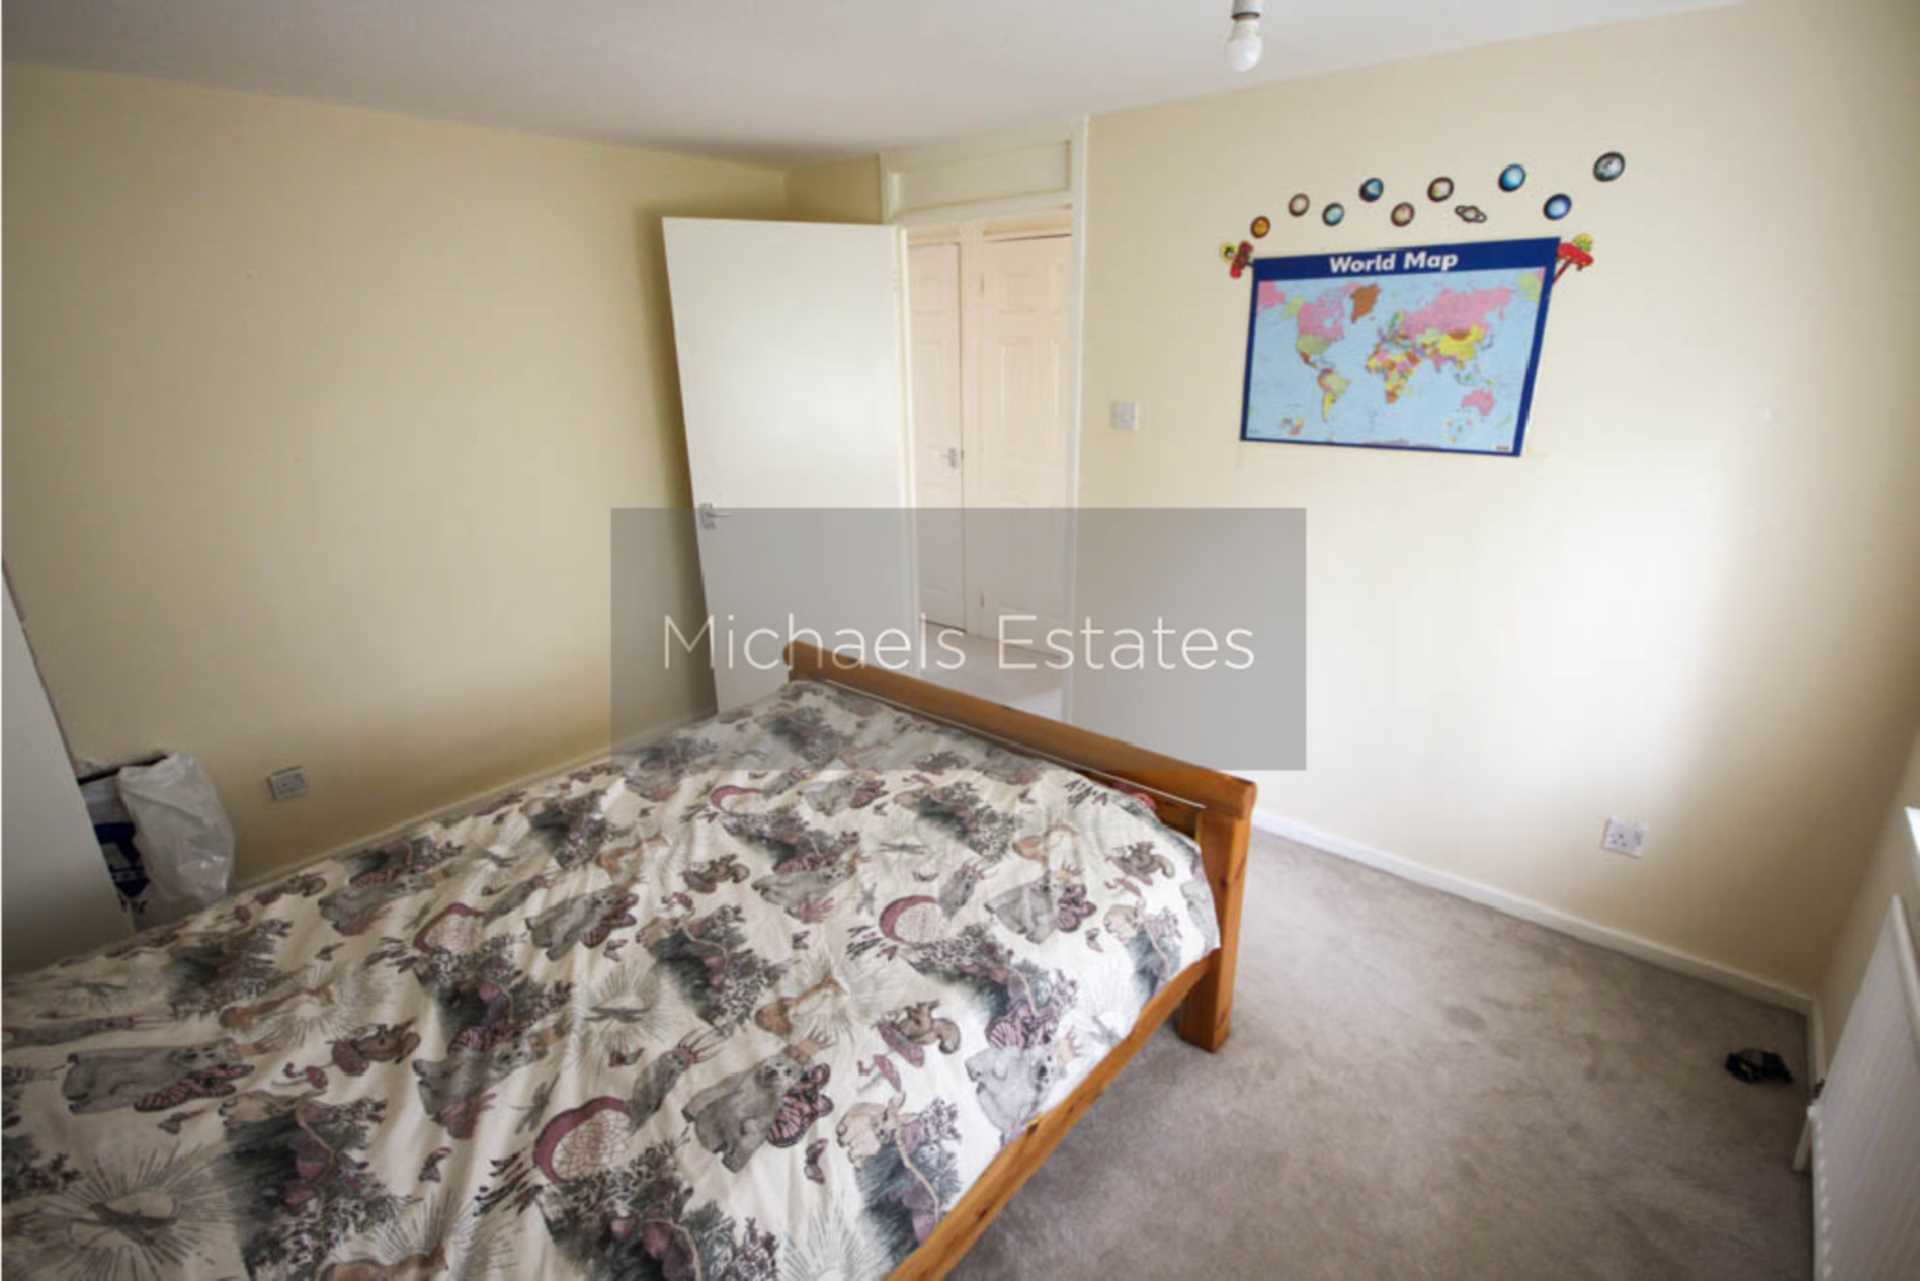 Bonville Place, Leicester, Image 11